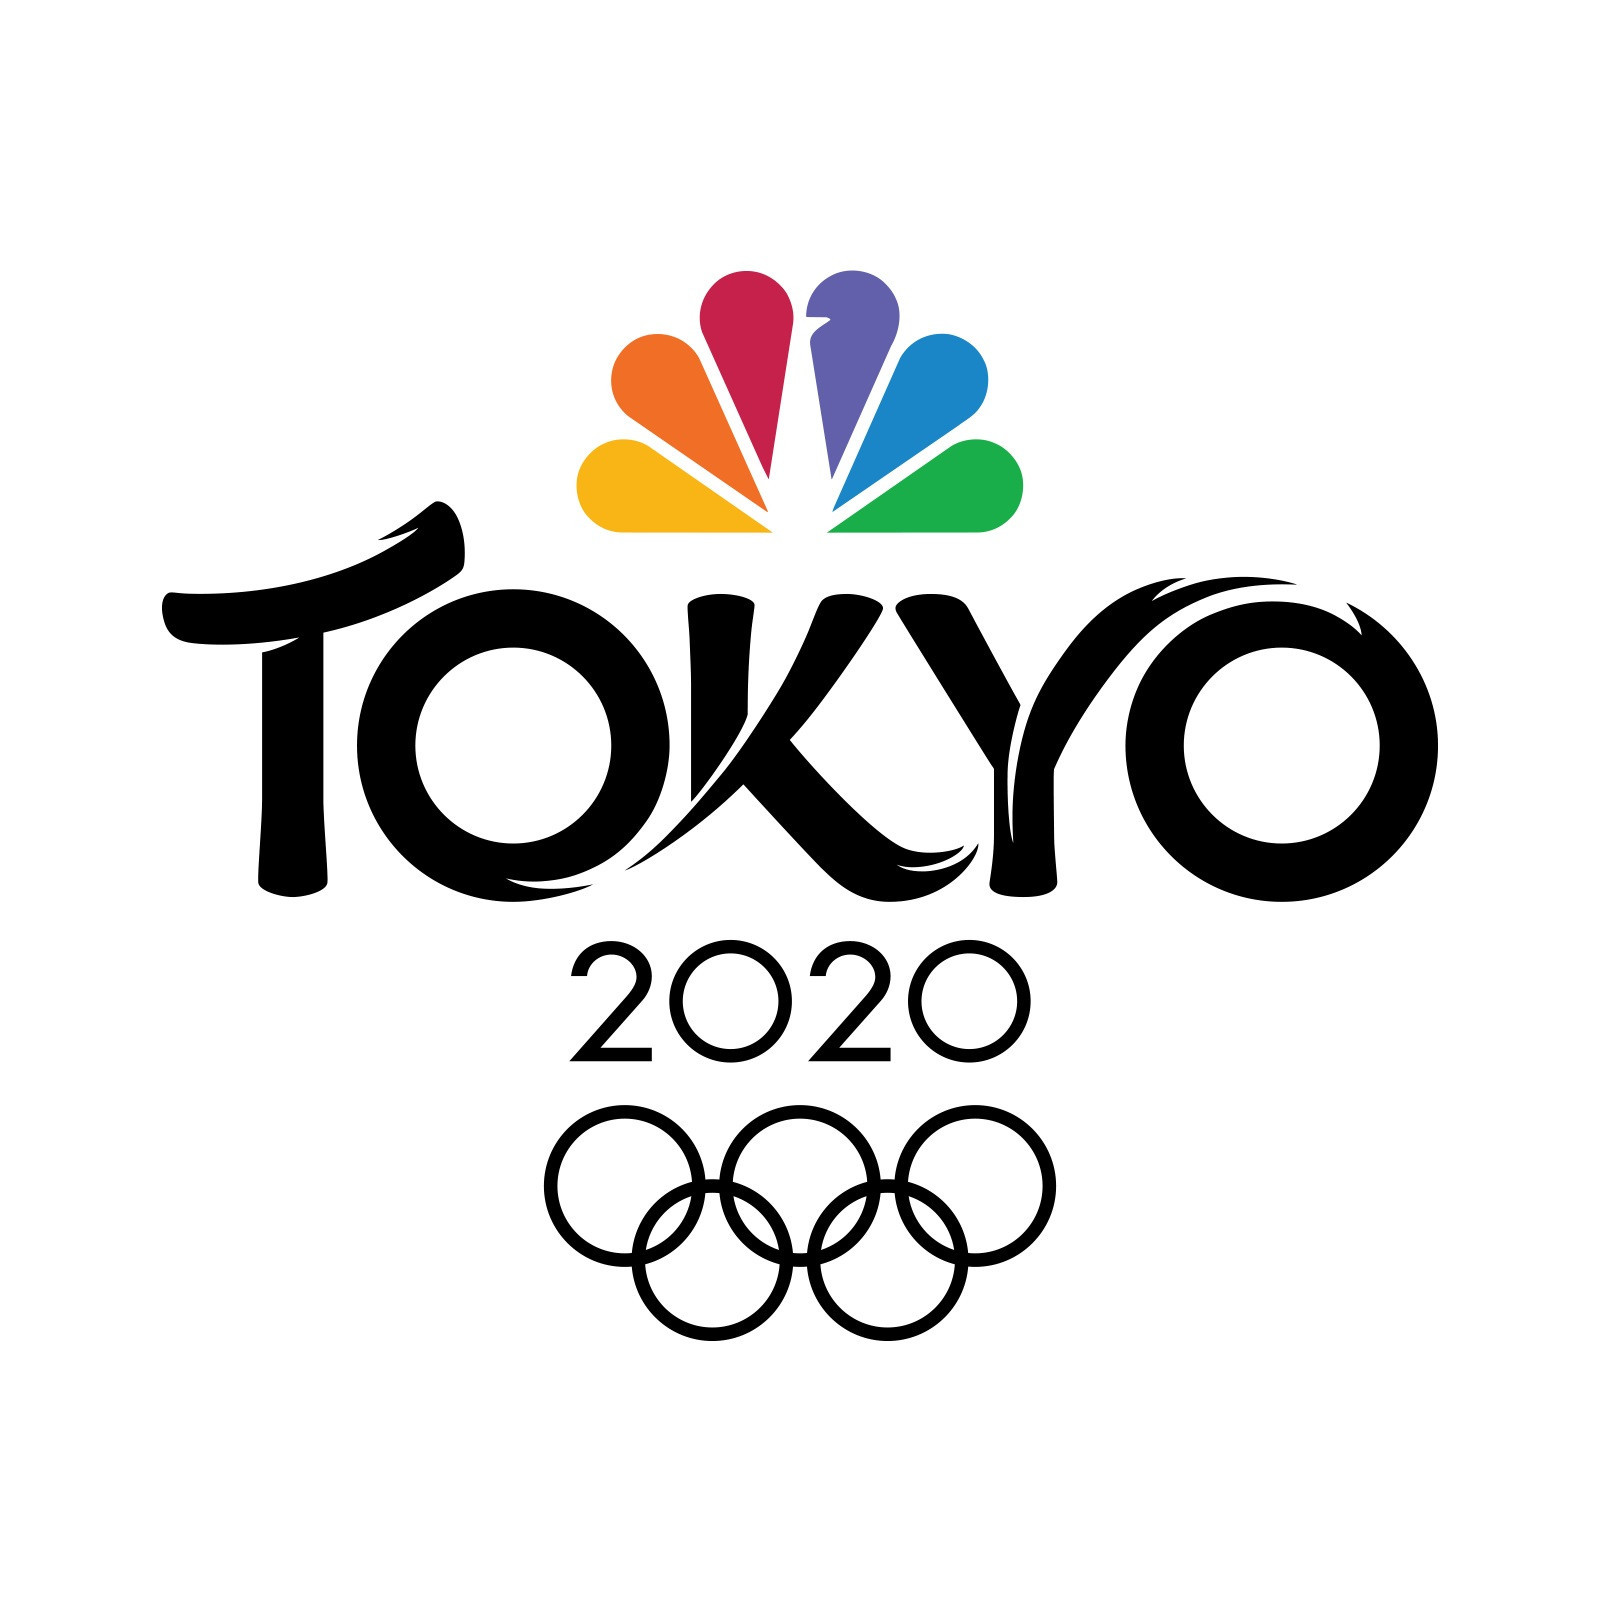 NBCUniversal has created a new digital tool, called the Olympics Ad Engine to help advertisers ©NBC